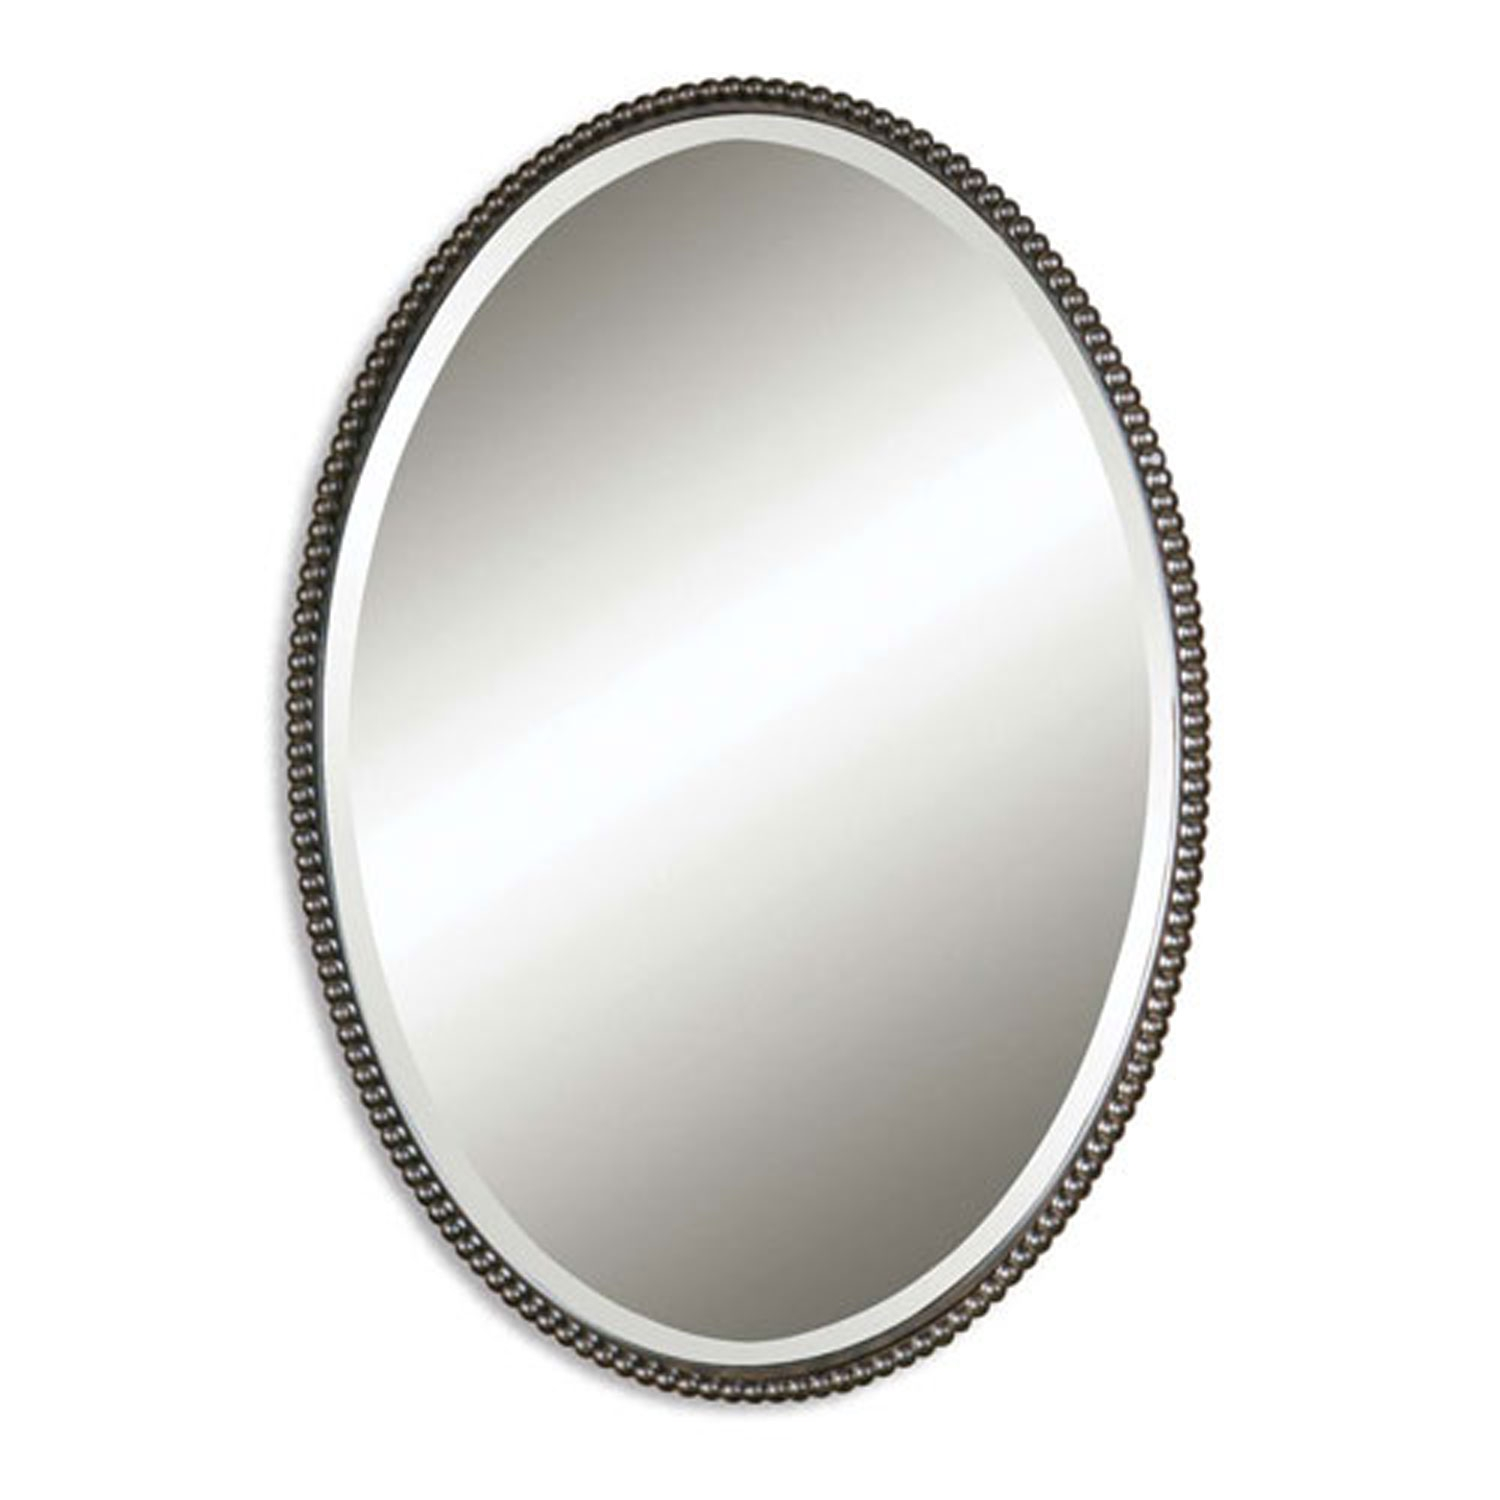 Transitional Mirrors Decorative Mirrors Bellacor Inside Oval Wall Mirrors (Image 13 of 15)